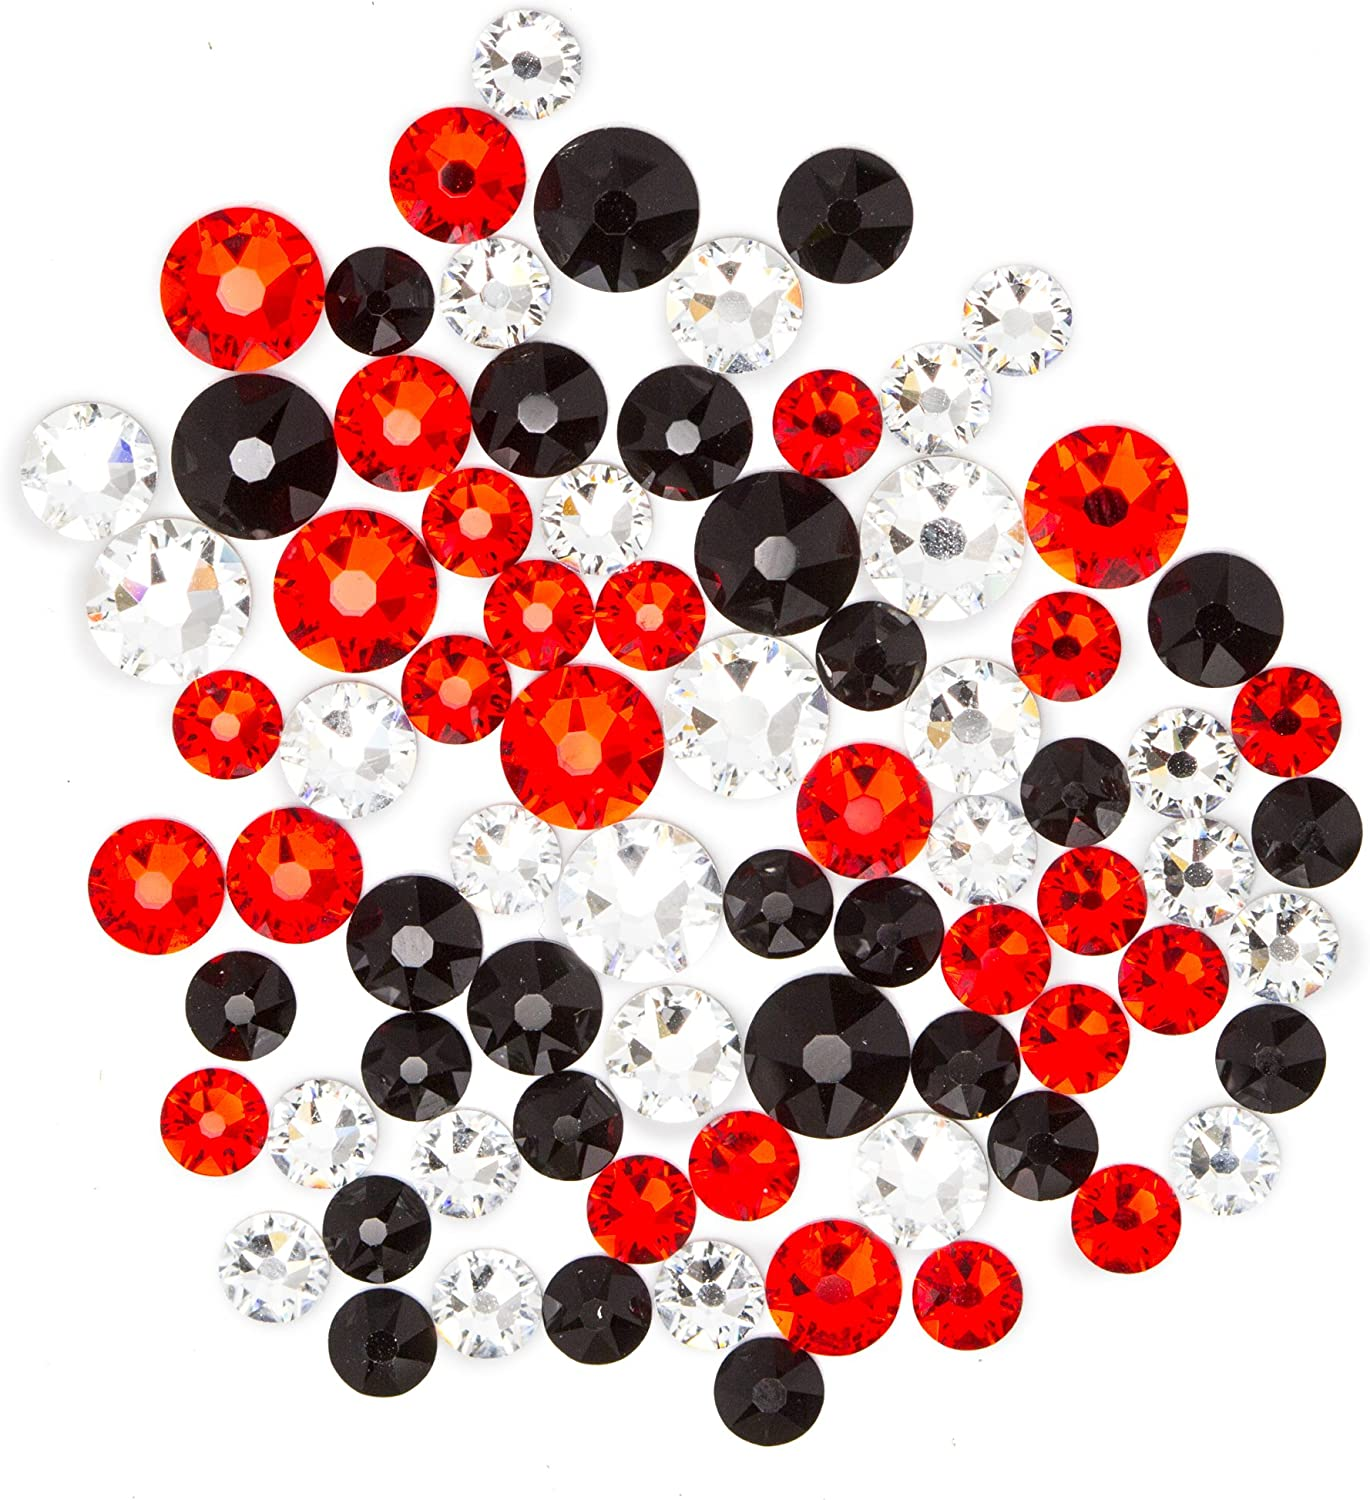 Swarovski  Create Your Style Hotfix Crystal Mix Red, White, and Black 3 Packages of 80 Piece (240 Total Crystals)